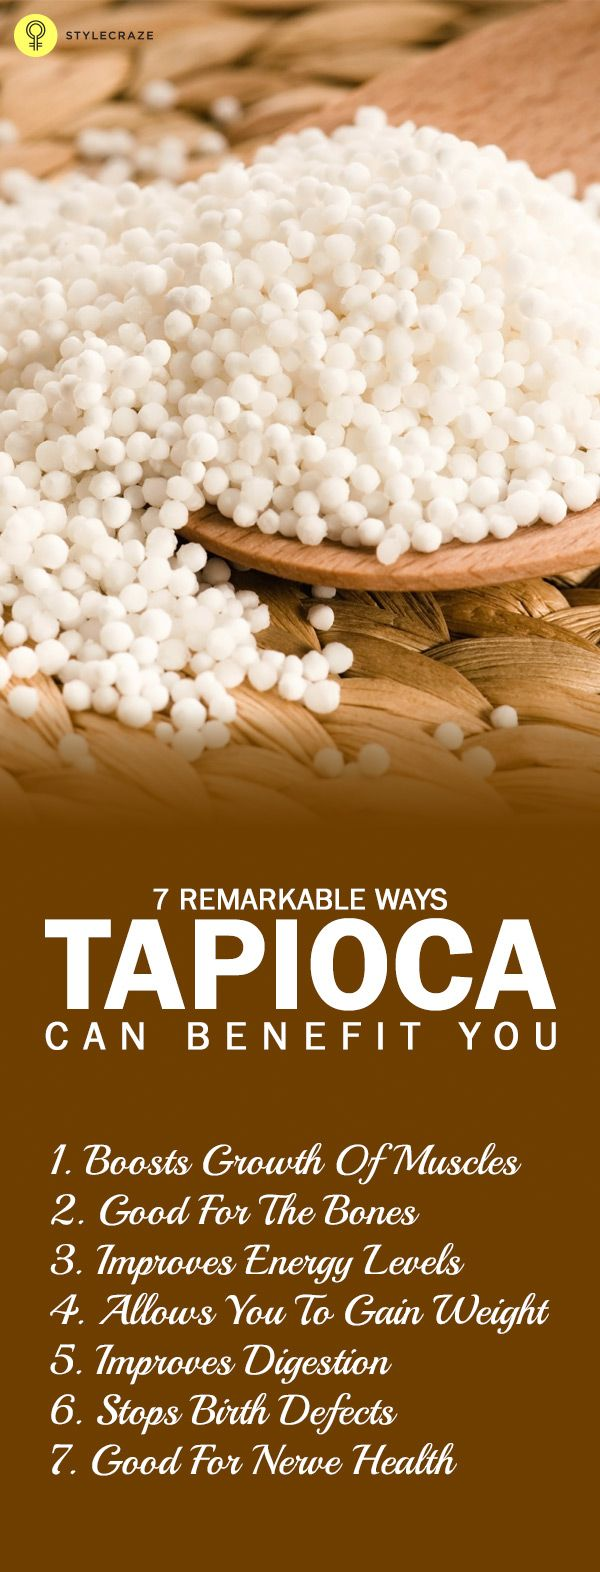 7 Remarkable Ways Tapioca Can Benefit You